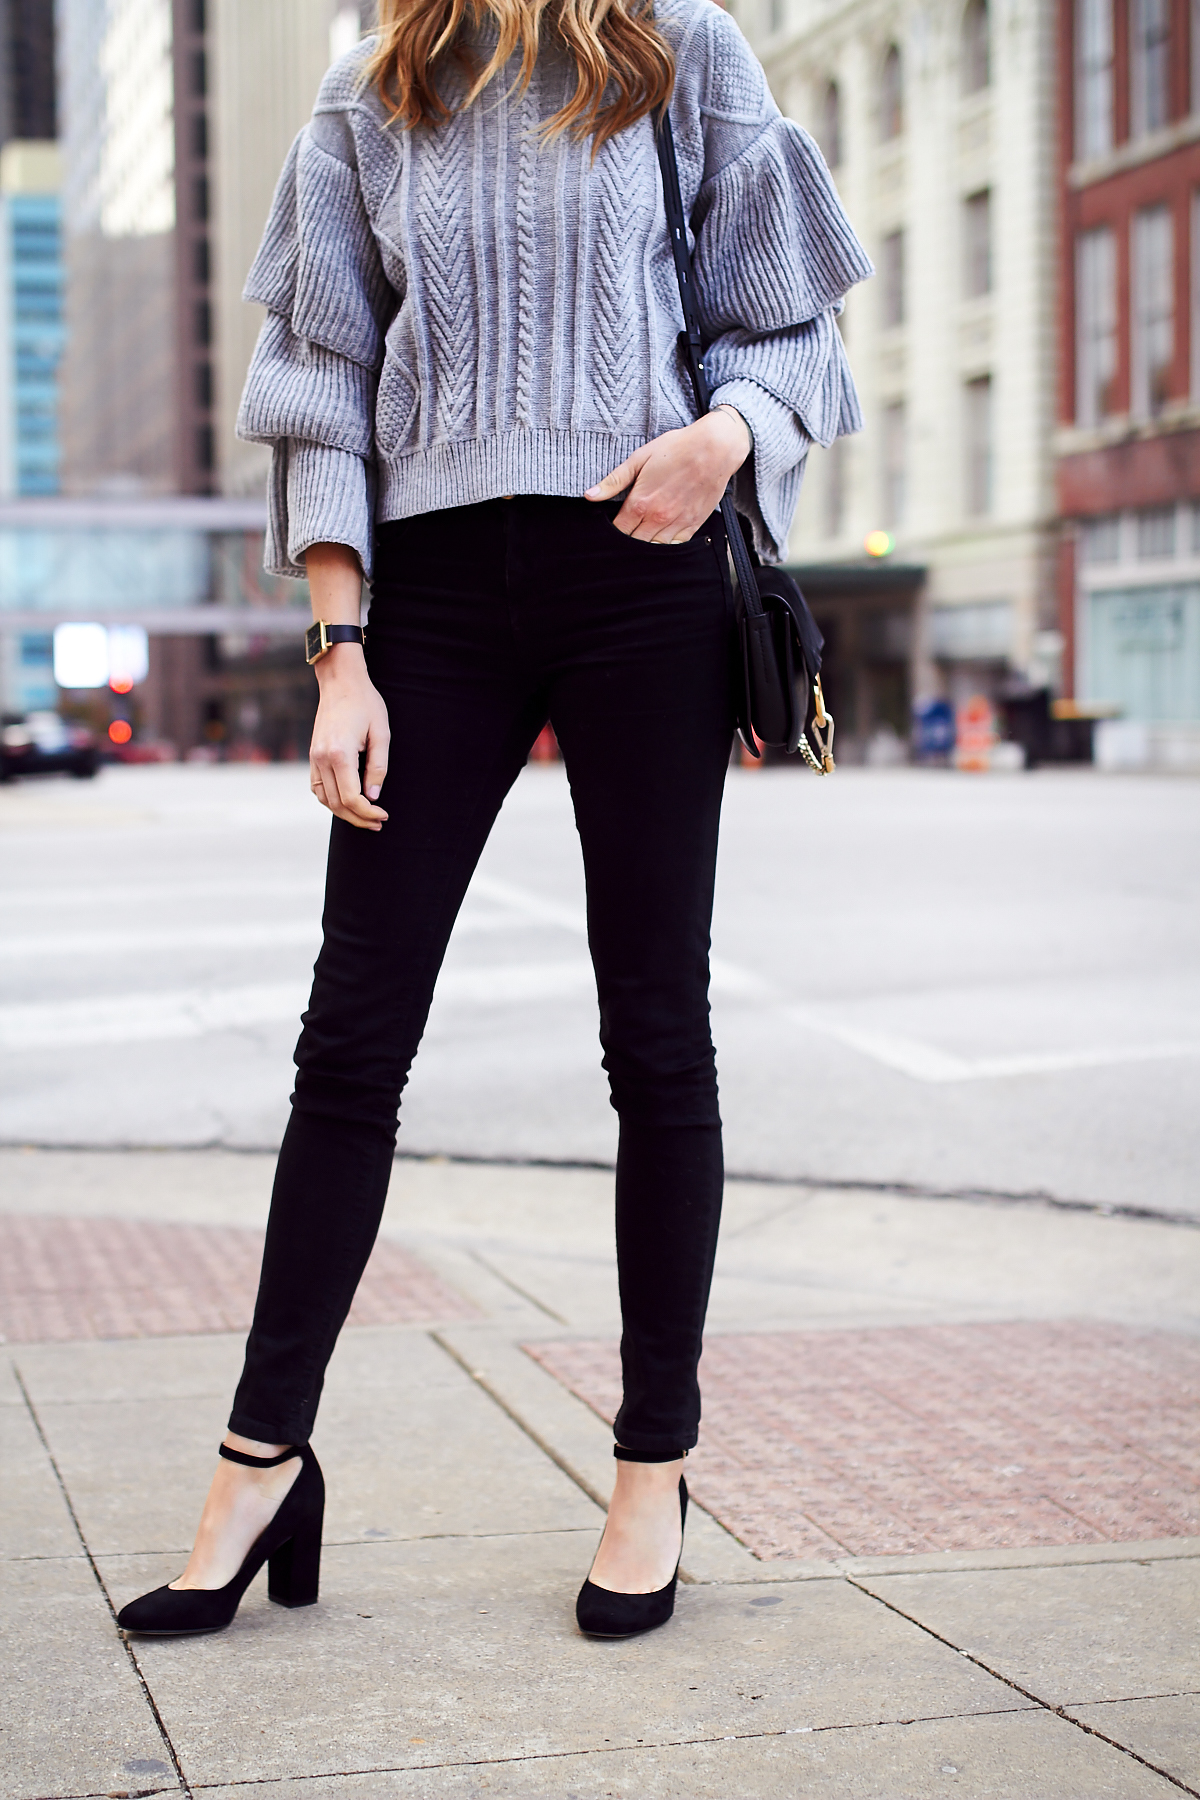 Fall Outfit, Winter Outfit, Grey Ruffle Sleeve Sweater, Black Skinny Jeans, Black Ankle Strap Block Heel Pumps, Chloe Faye Handbag